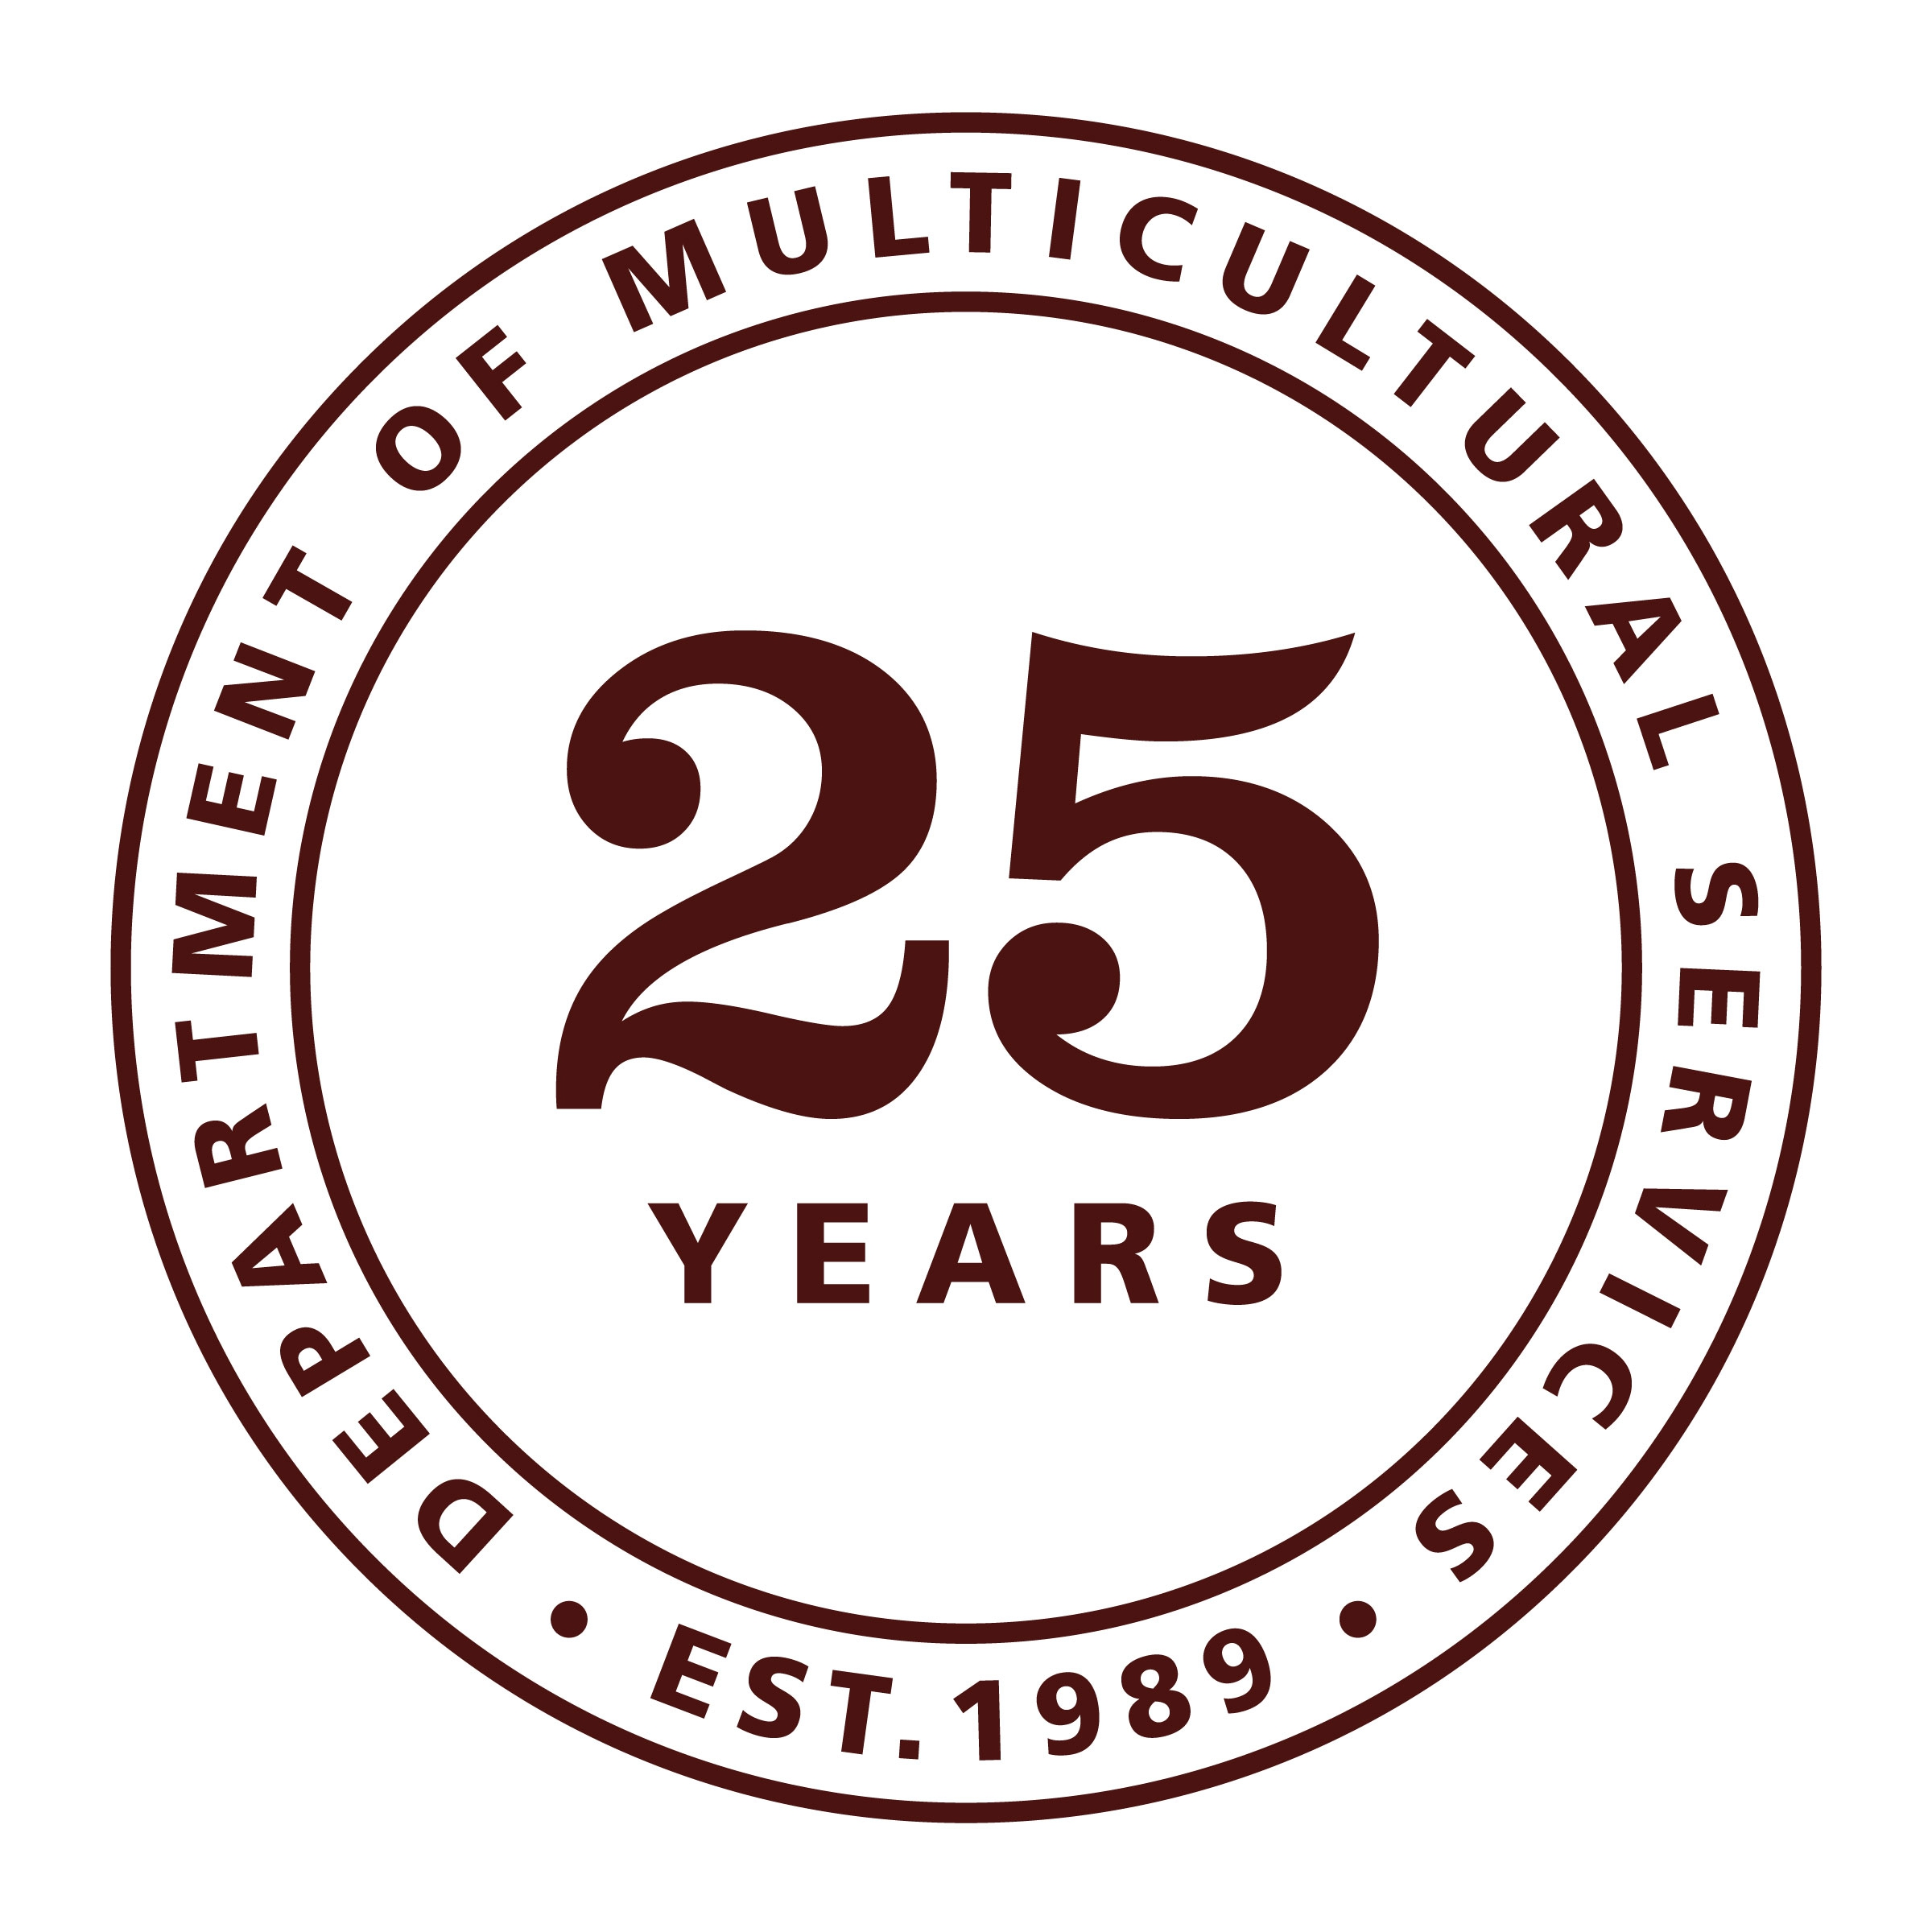 Department of Multicultural Services 25th Anniversary Medallion